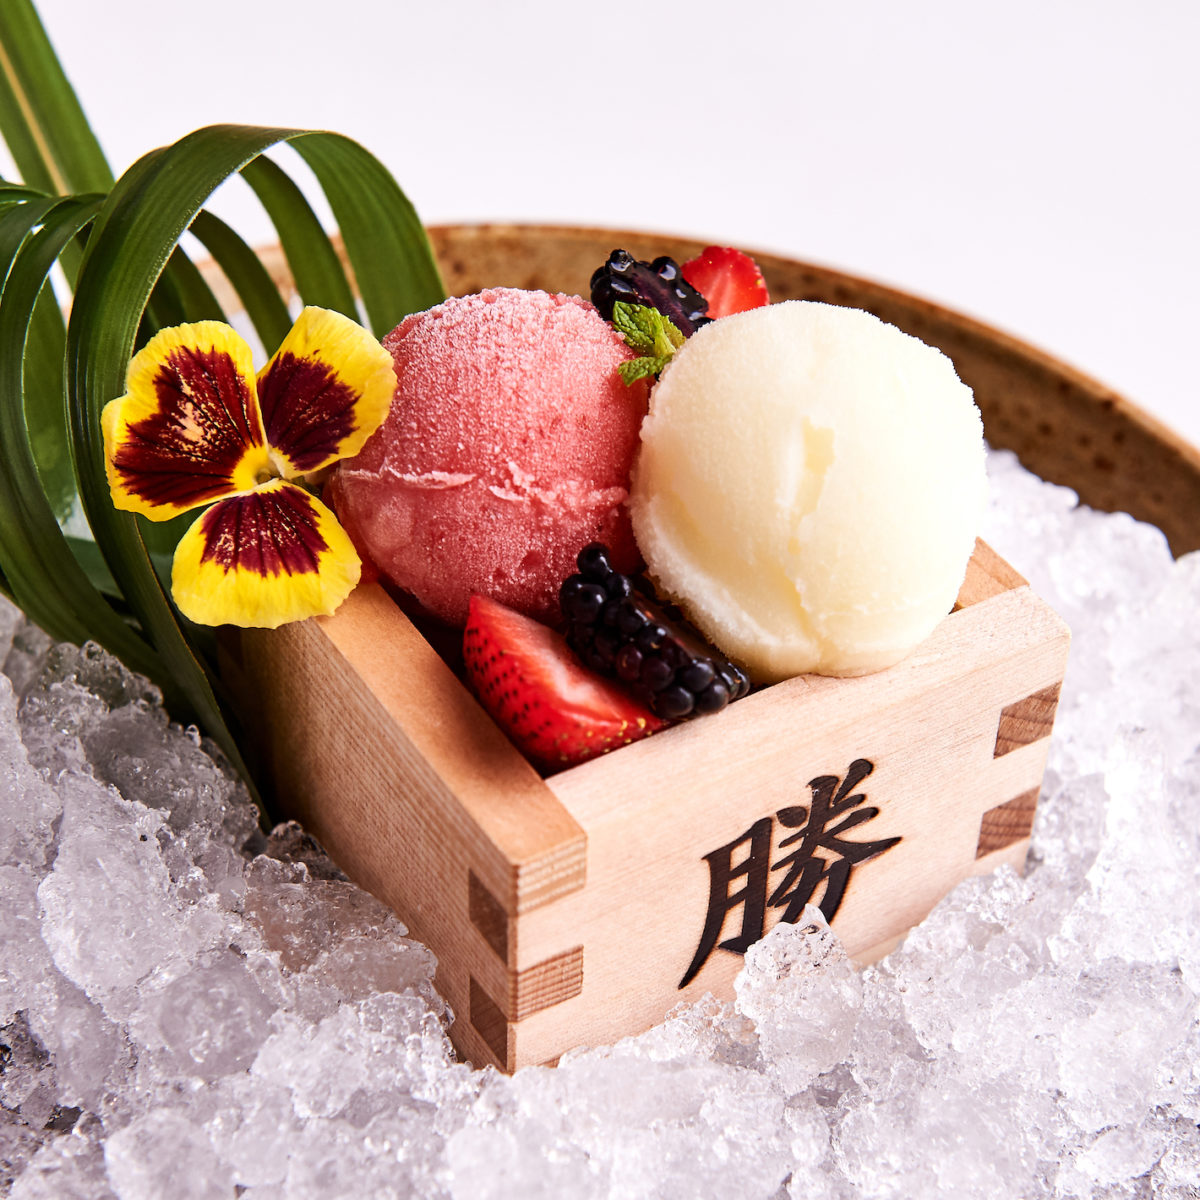 Ramadan Specials & Daytime Dining at Katsuya by Starck Slug preview:http://theluxediary.com/ramadankatsuyastarck/ Meta description preview:Ramadan Specials & Daytime Dining at Katsuya by Starck Here's some good news for connoisseurs who can't get enough of Katsuya's succulent offerings and delectable signatures! The stylish Japanese restaurant at the Jumeirah Al Naseem Hotel will remain open for daytime dining during the holy month Ramadan.